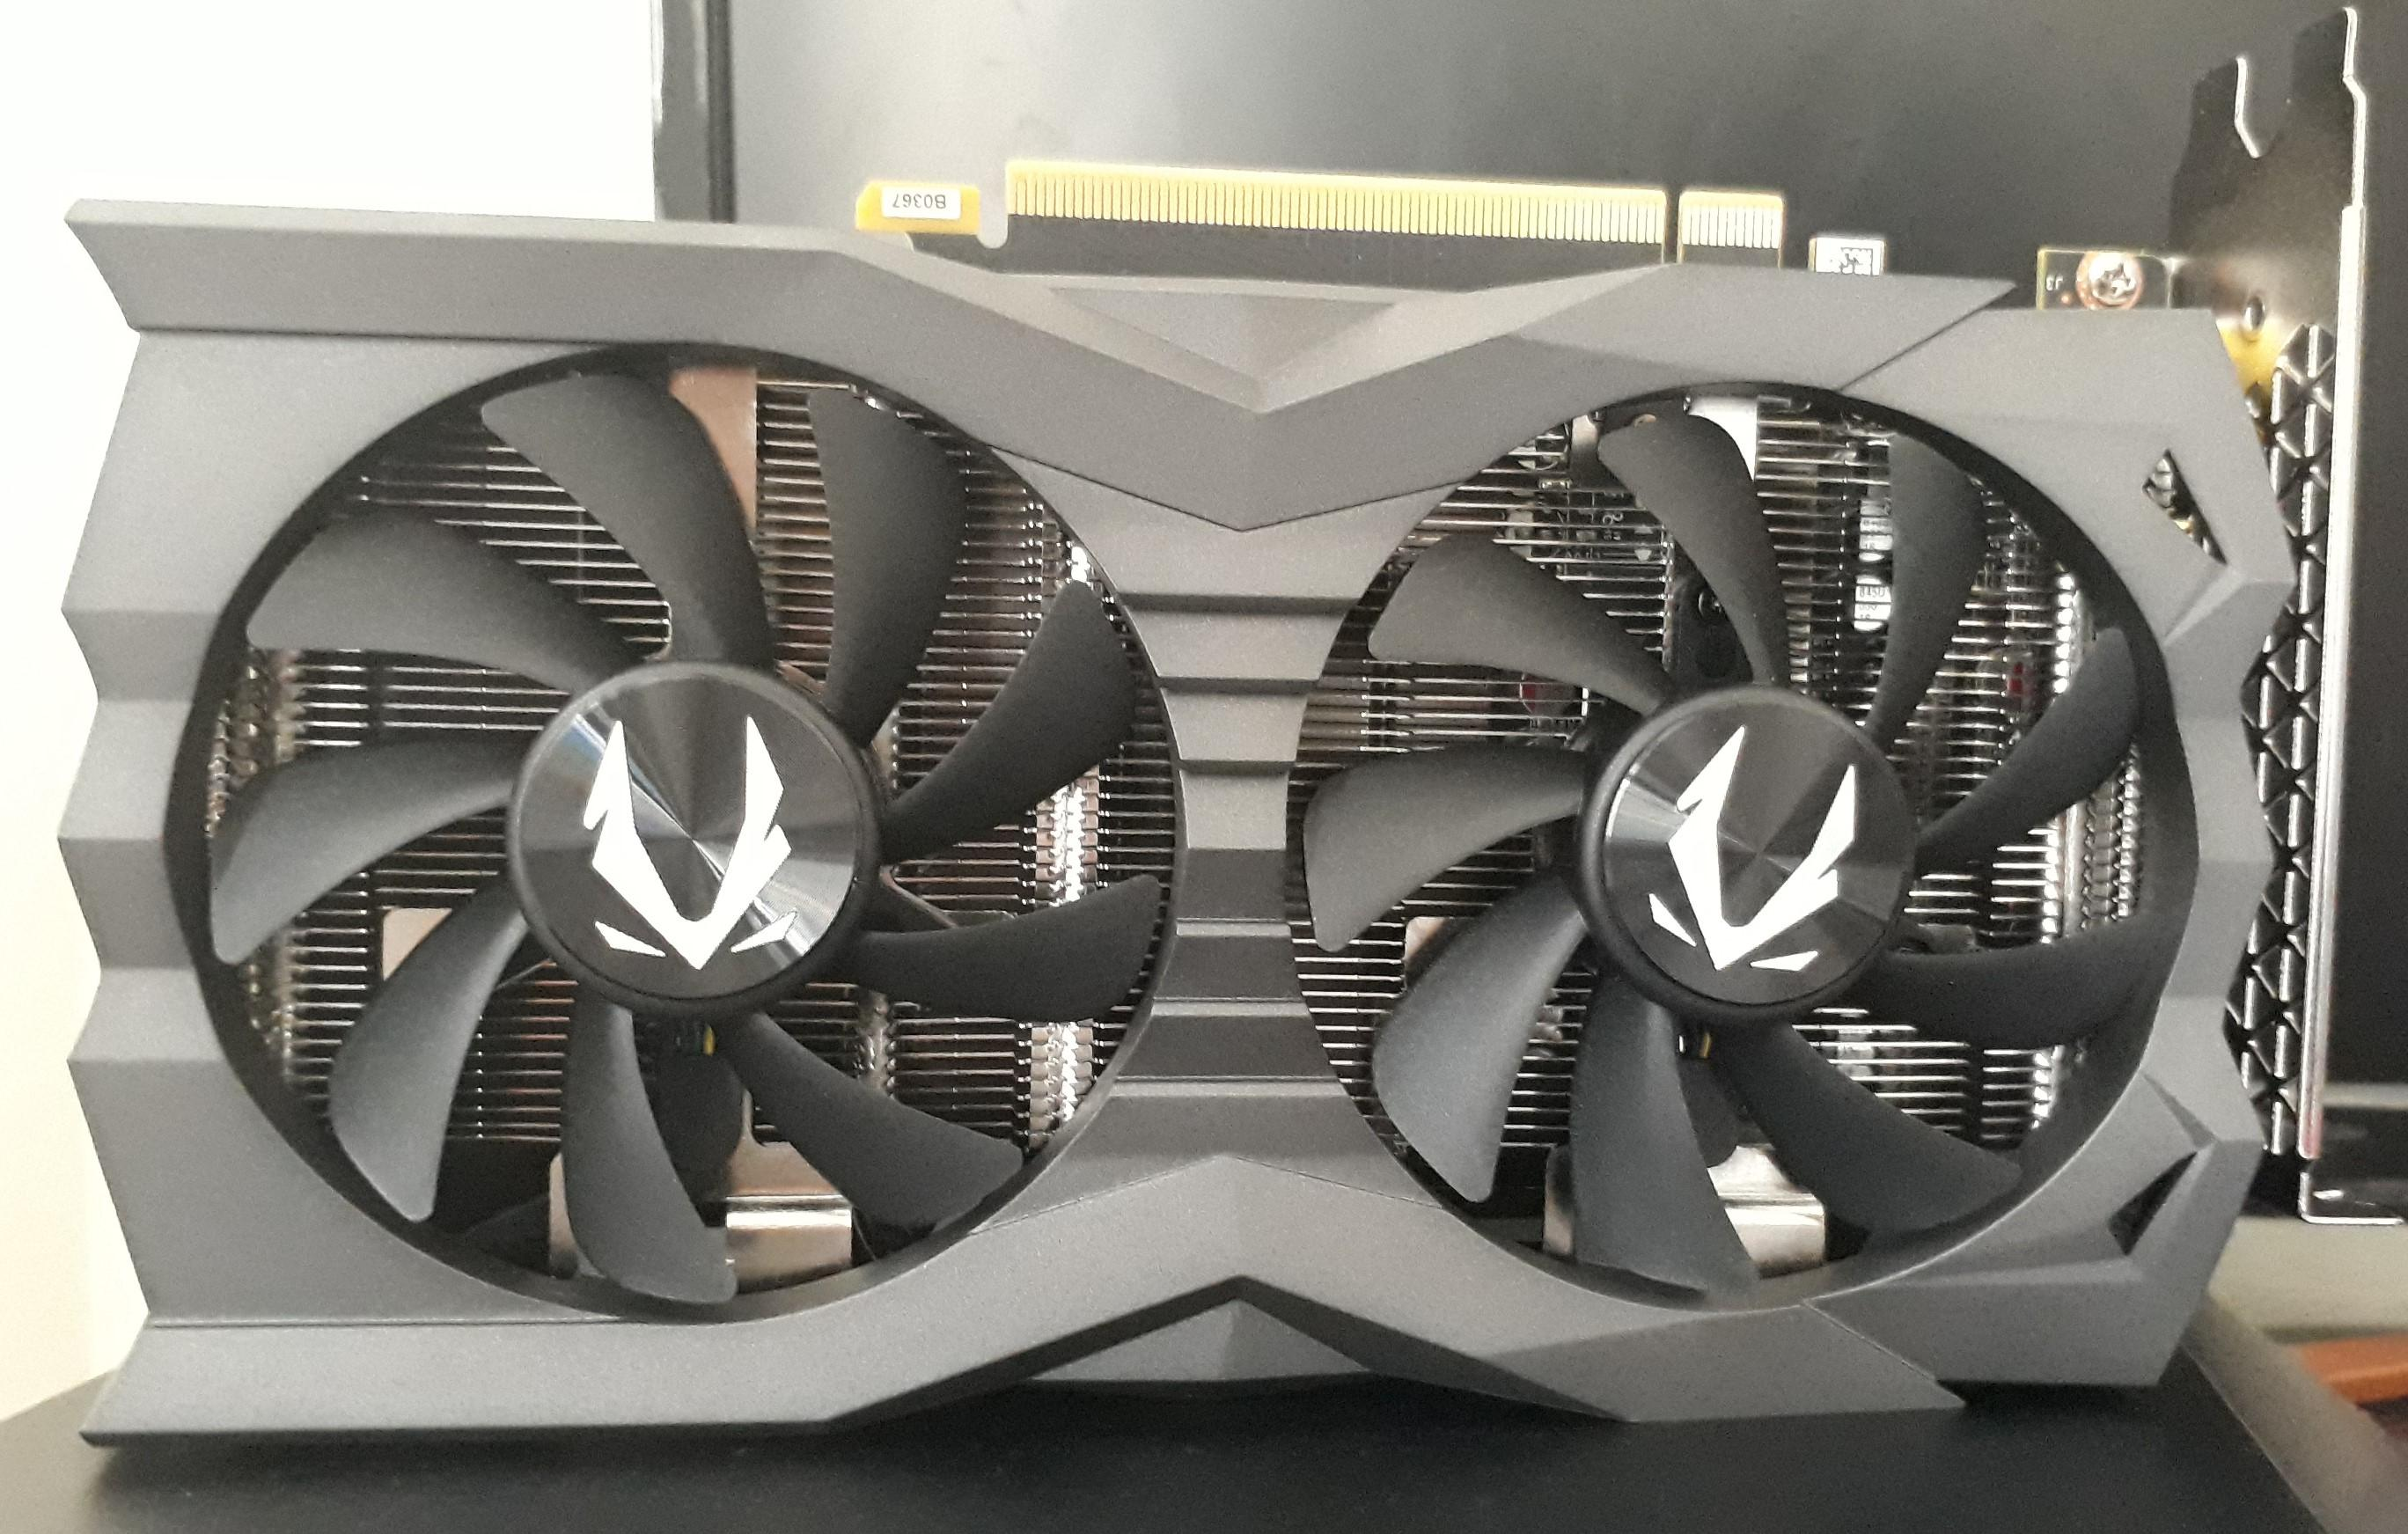 新一代1070殺手 ZOTAC GAMING GeForce GTX 1660 Ti AMP 不專業開箱 - XFastest - 20190327_131935.jpg